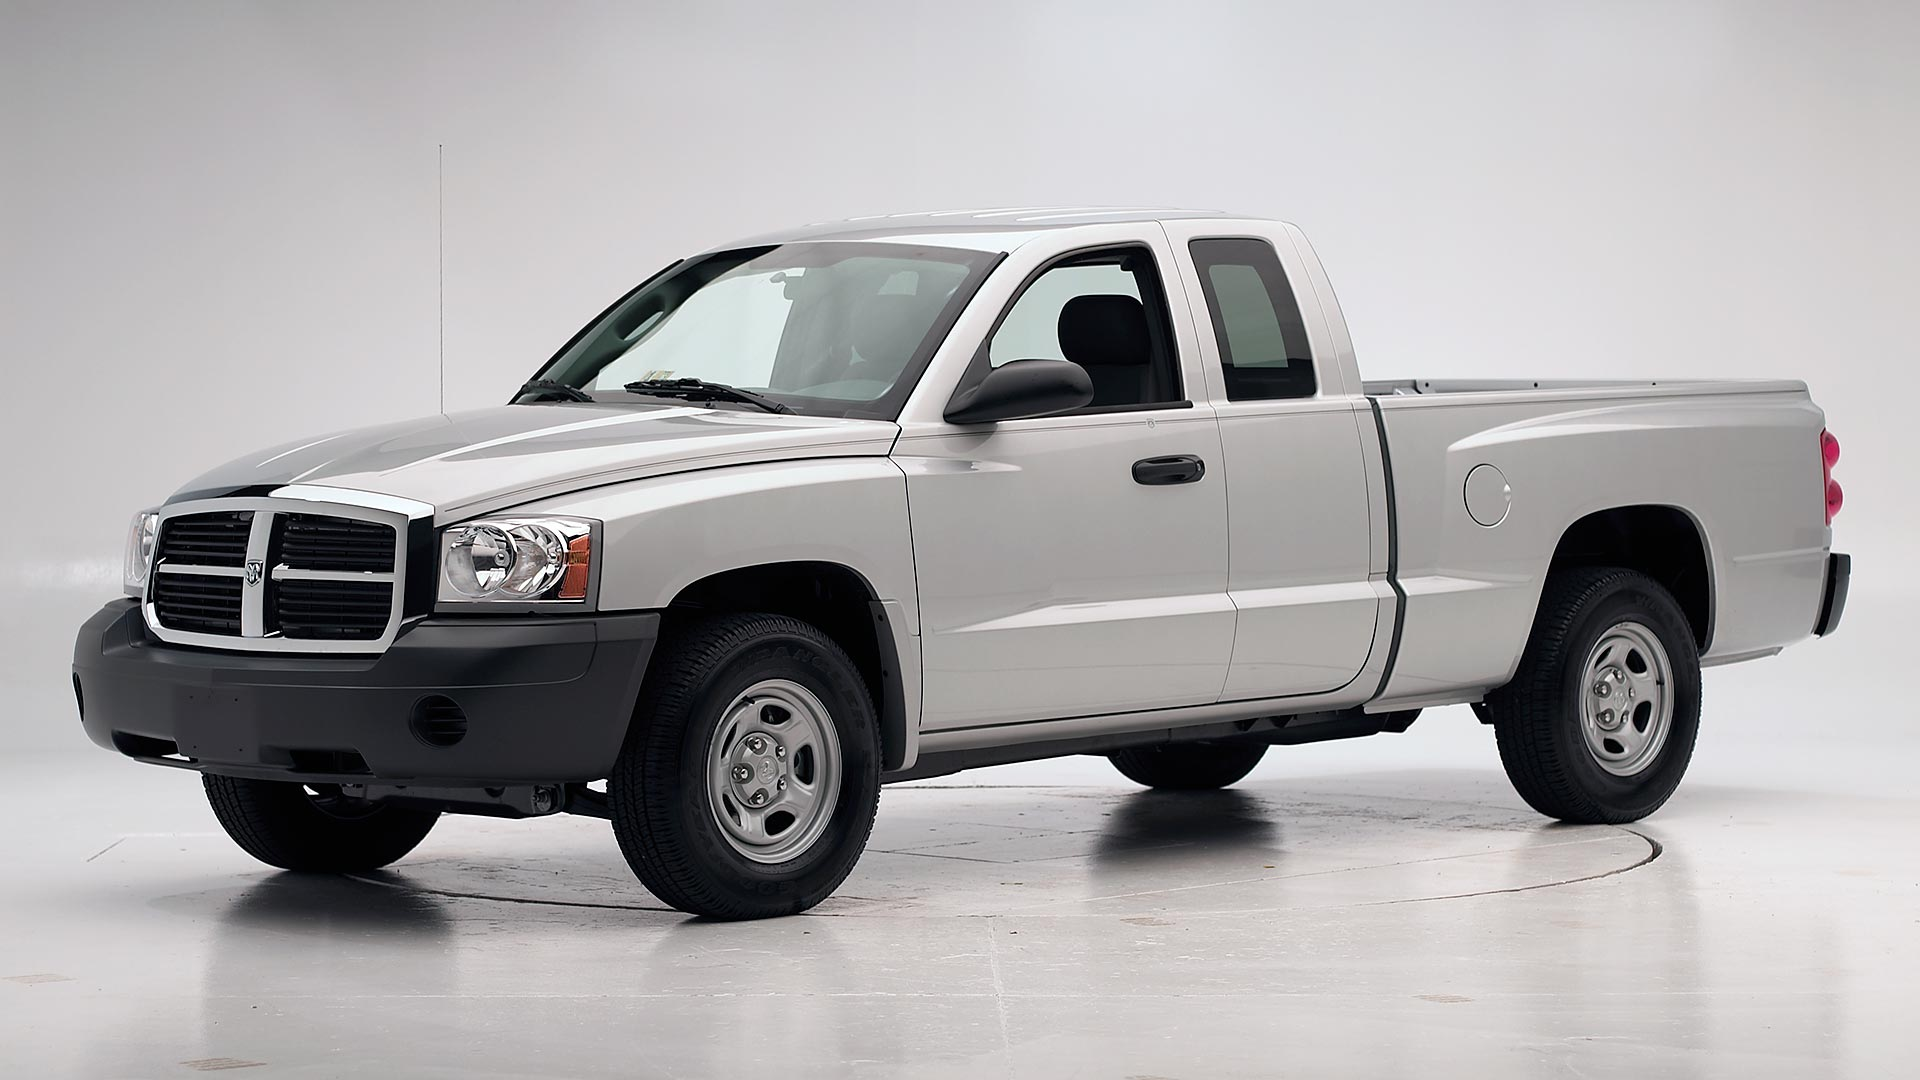 2008 Dodge Dakota Extended cab pickup